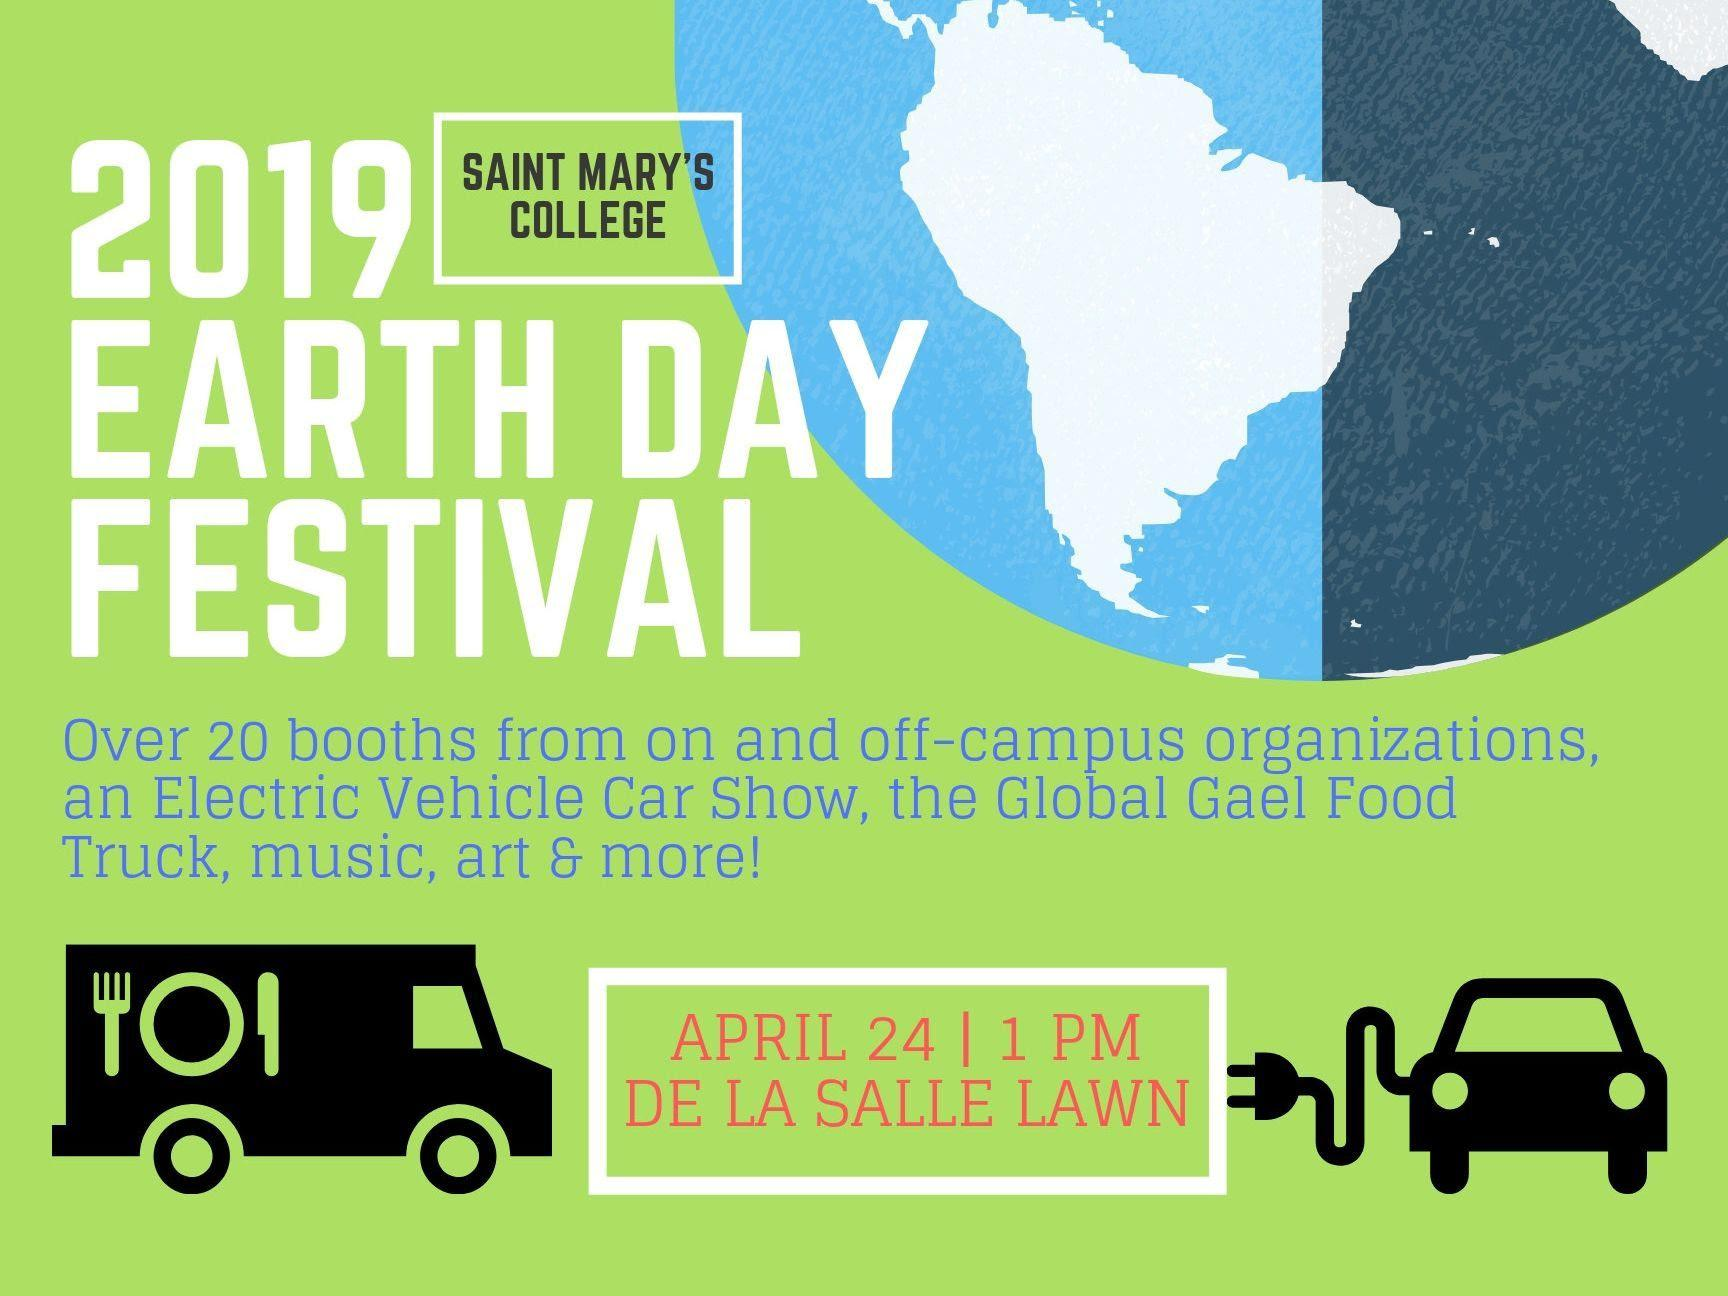 2019 Saint Mary's Earth Day Festival